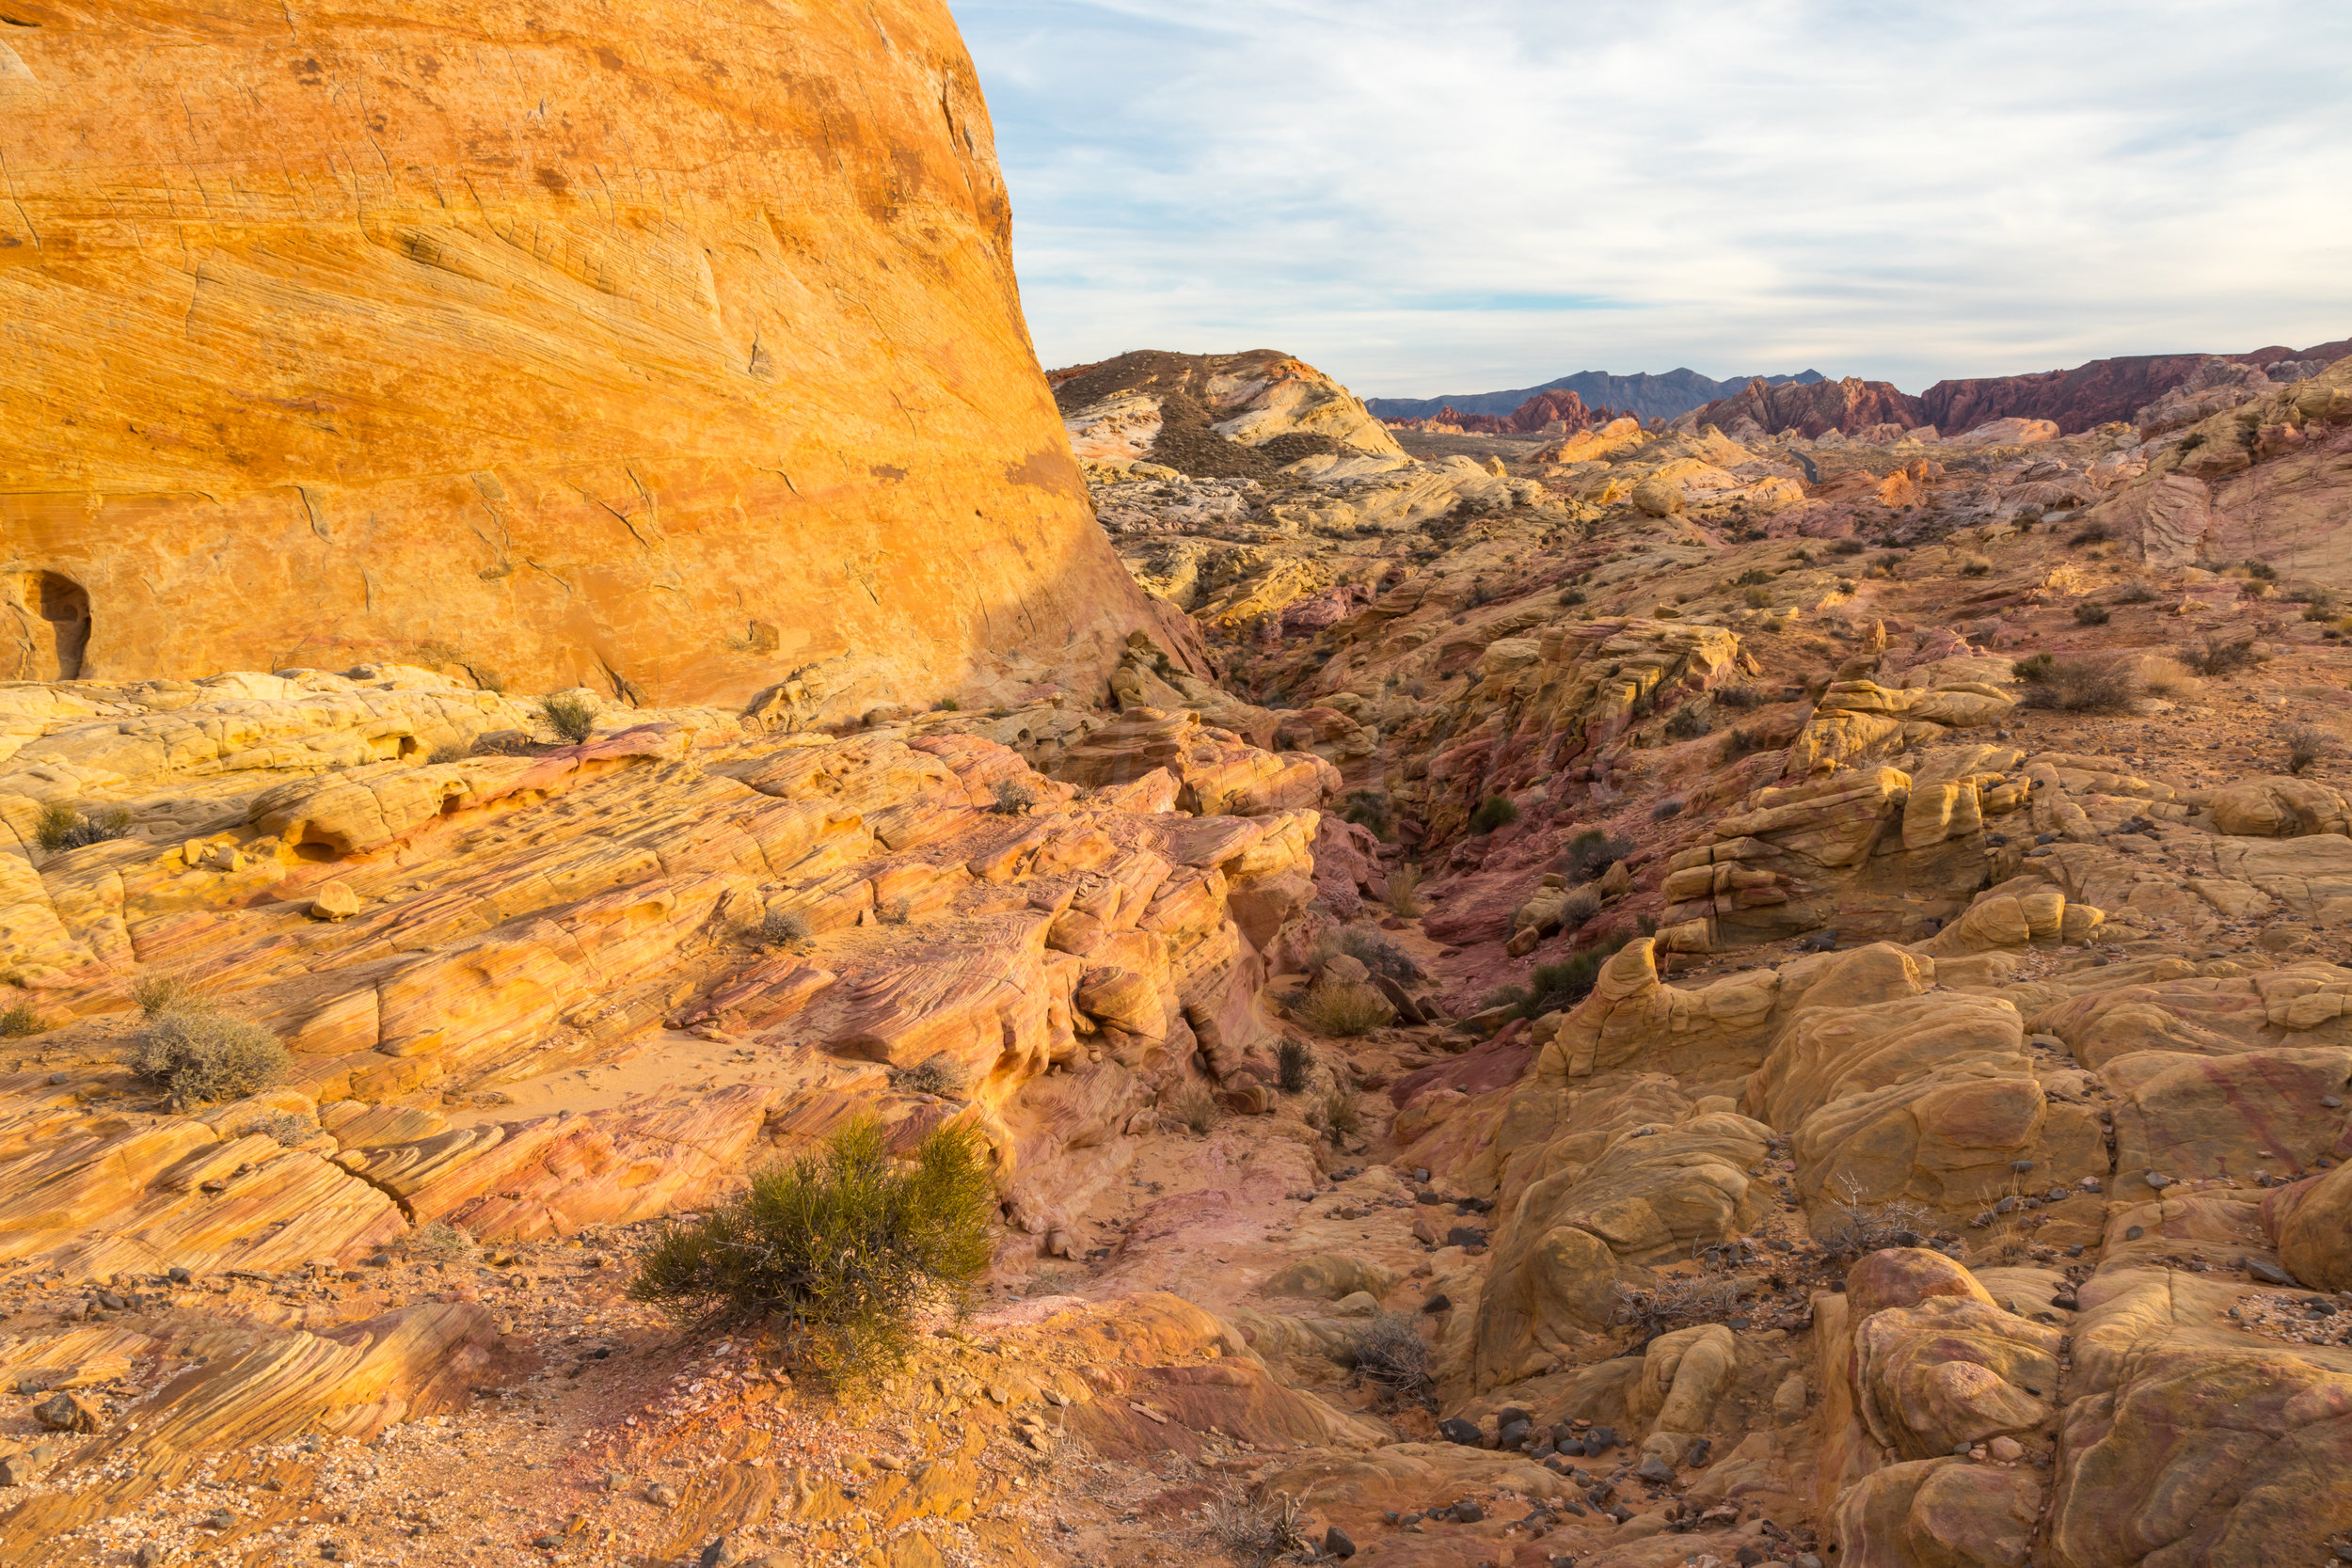 Valley of Fire, Image # 0652